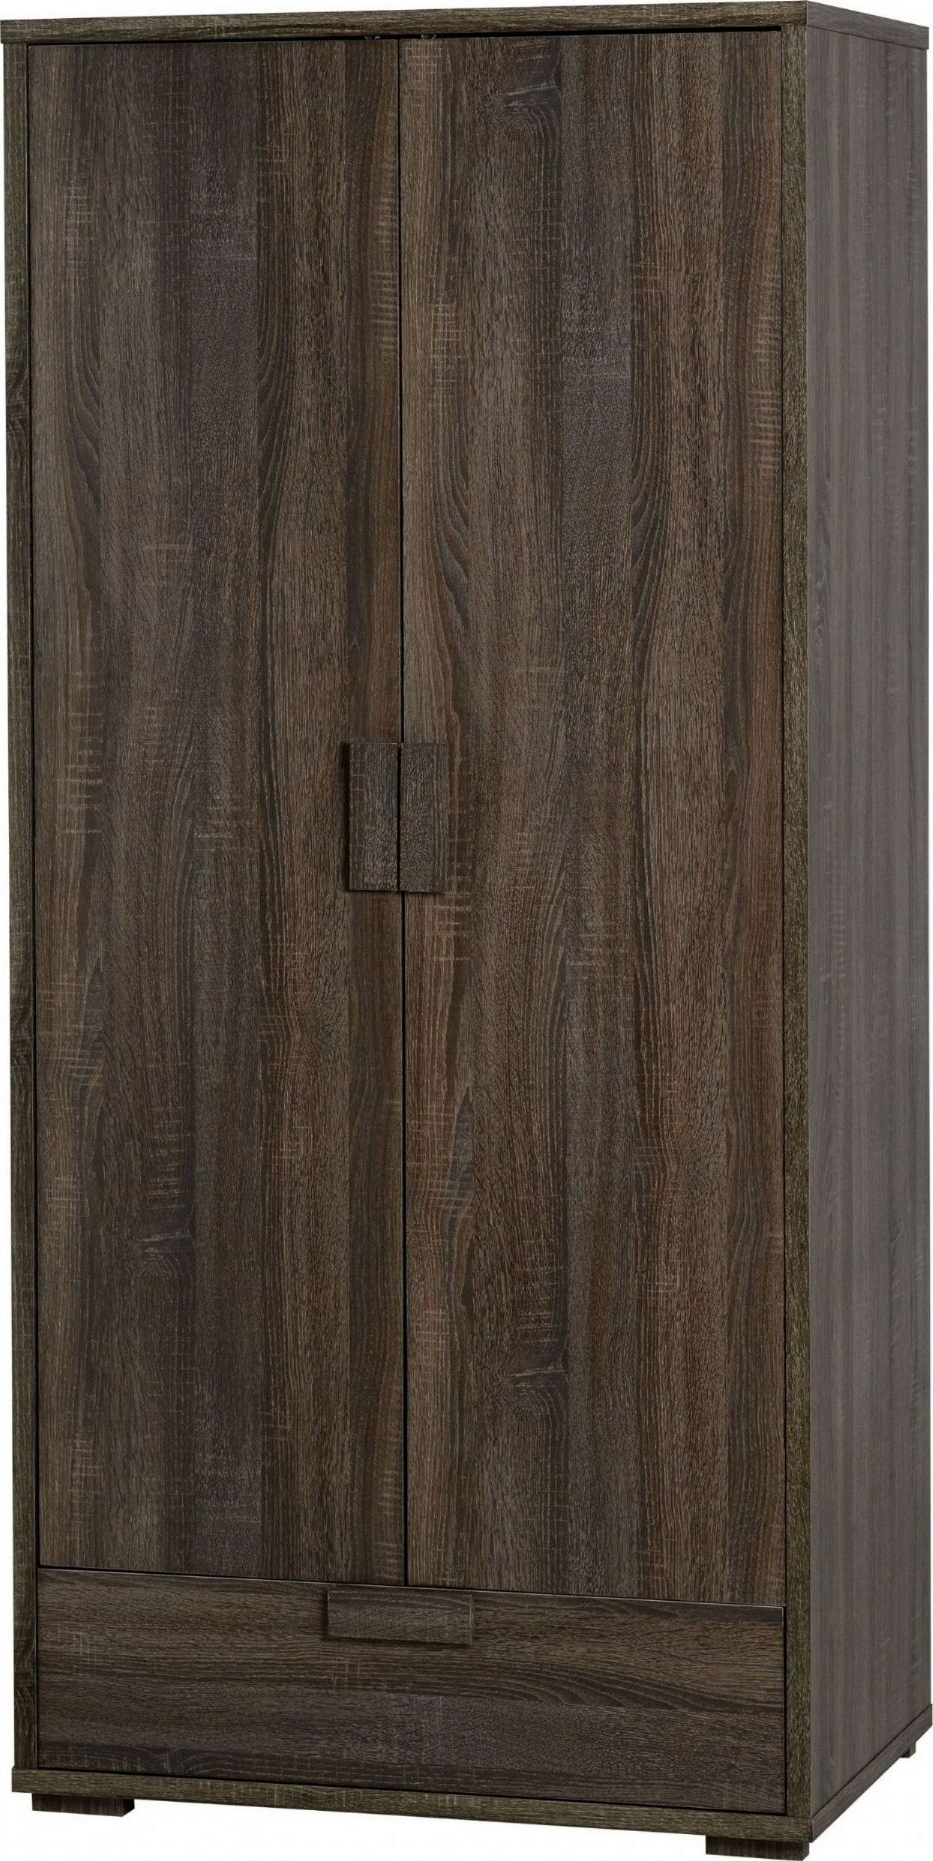 Widely Used Painting A Dark Wood Wardrobe Solid Wardrobes Ikea Single Door Inside Dark Wood Wardrobes (View 6 of 15)